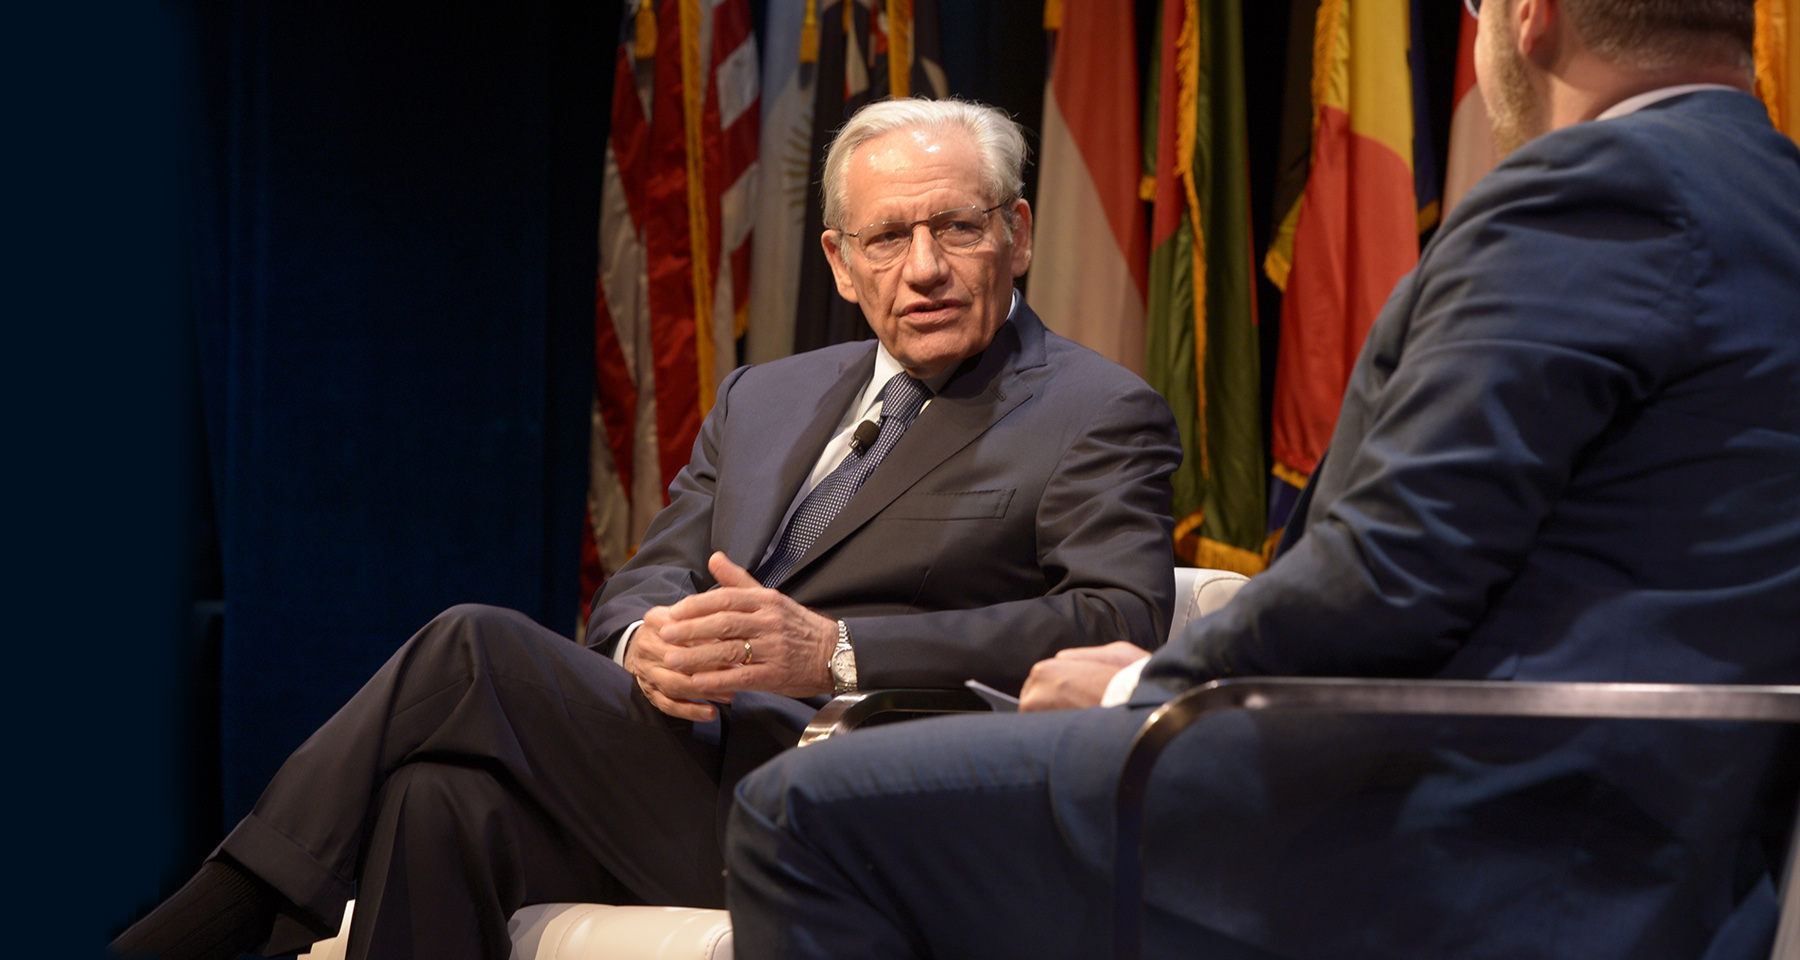 Bob Woodward shares lessons of Watergate in the Trump era